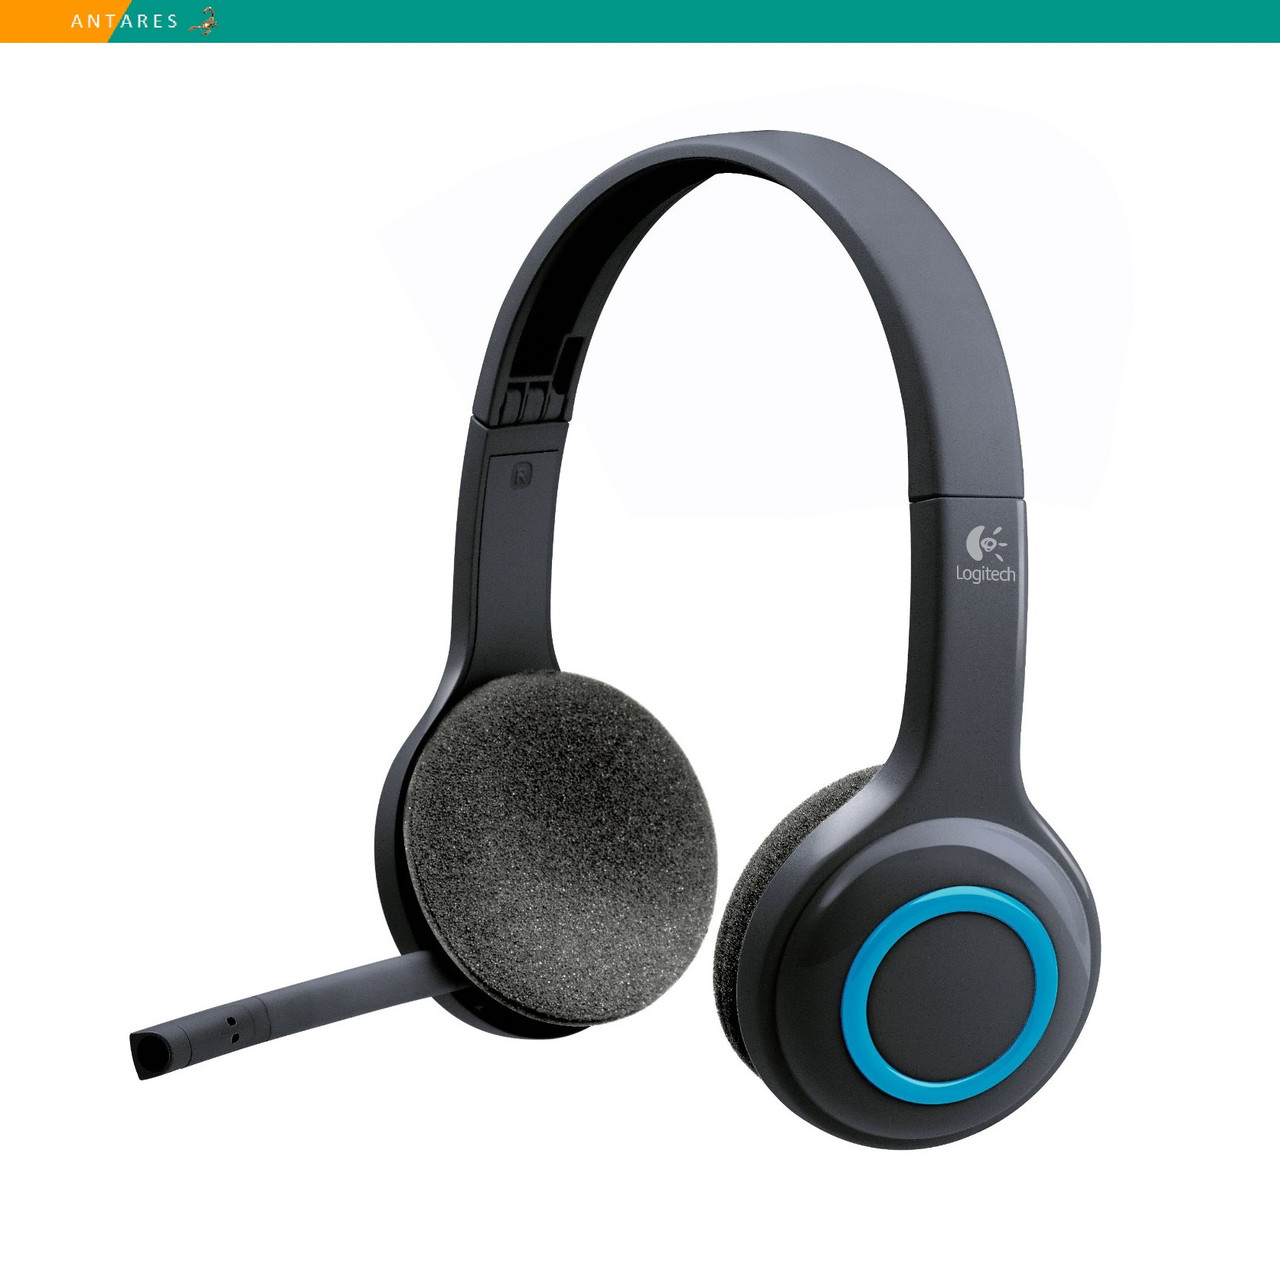 Гарнитура Logitech H600 Wireless Headset беспроводная USB с микрофоном складная (без упаковки)